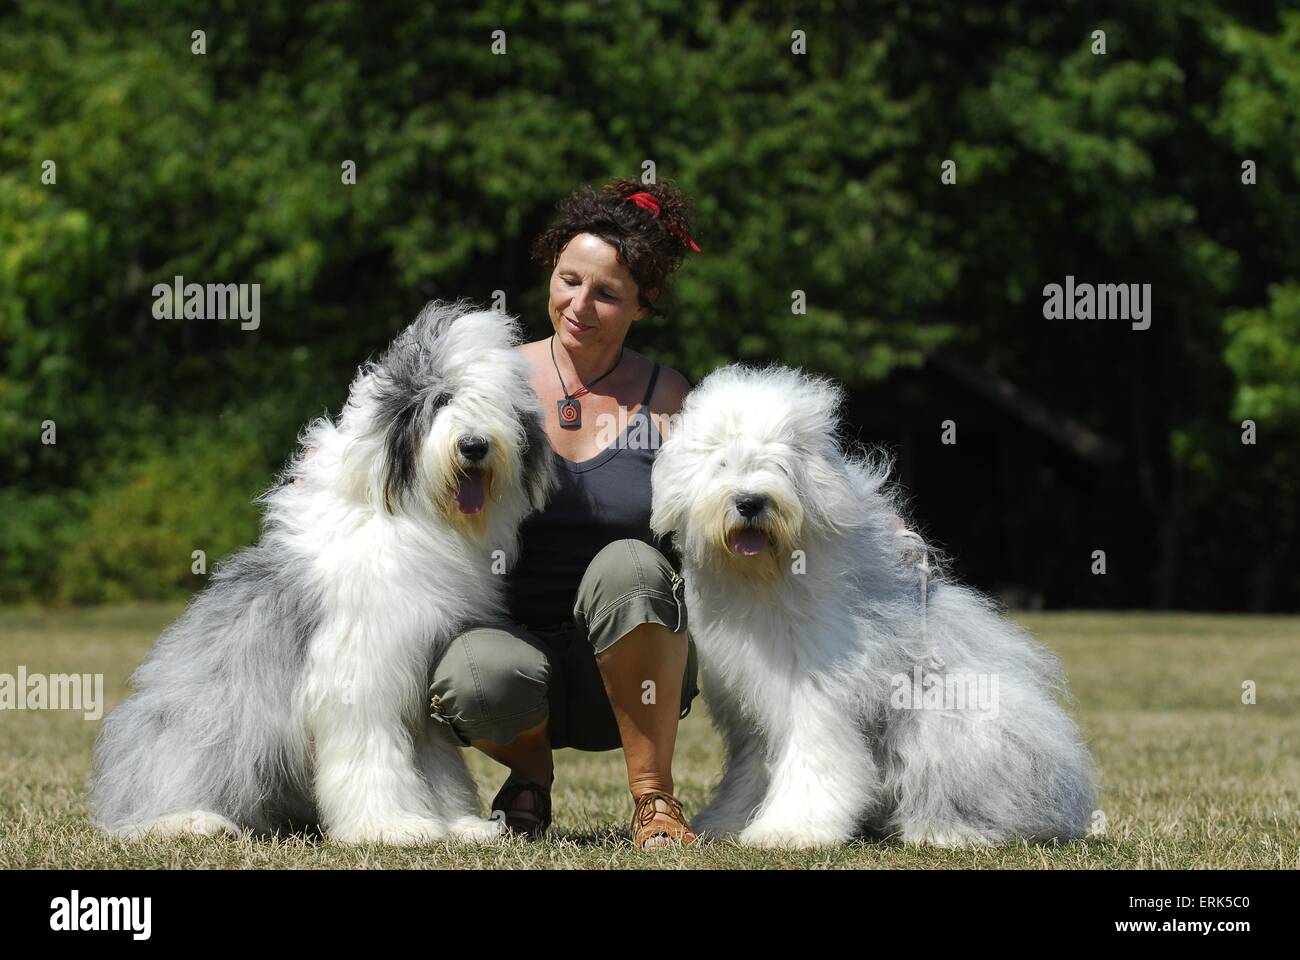 Bobtails High Resolution Stock Photography and Images - Alamy